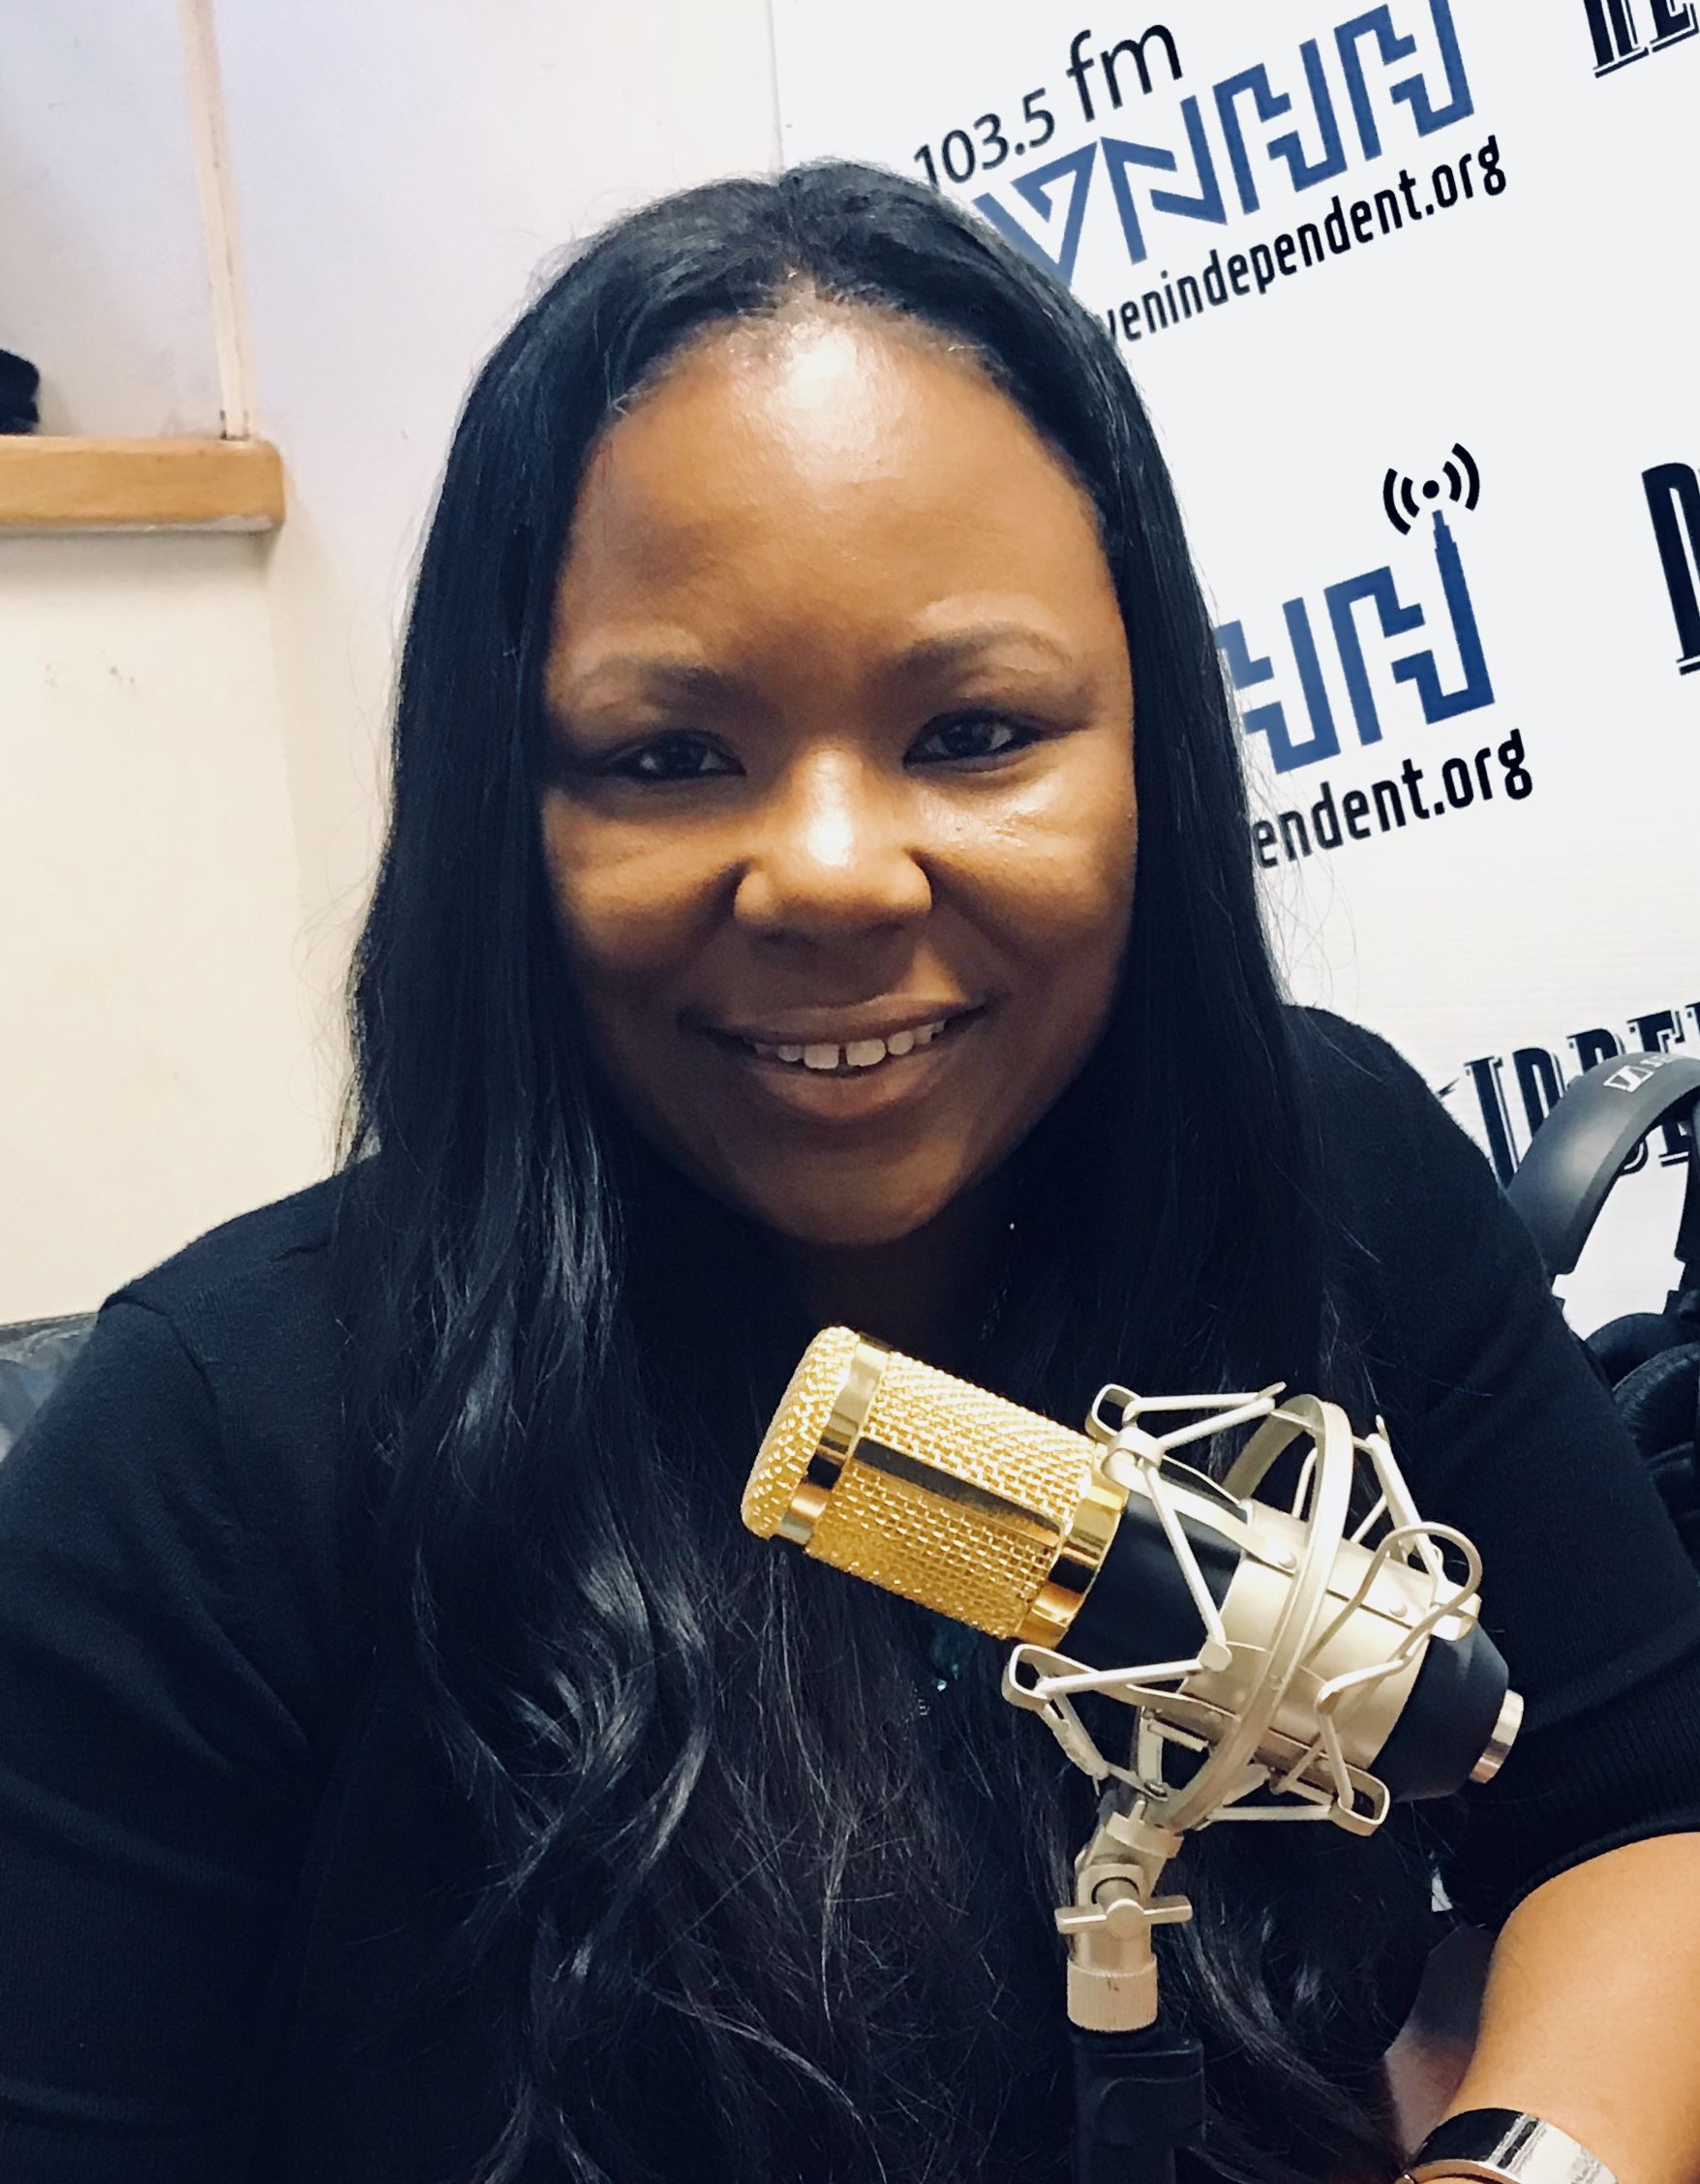 """Host alisa Bowens-Mercado talks about """"Africa Week"""" with Chaste Niwe from the Yale African Students Association (YASA), and takes on the hottest topics with her guest co-hosts Harry Droz & Irving Pinsky."""